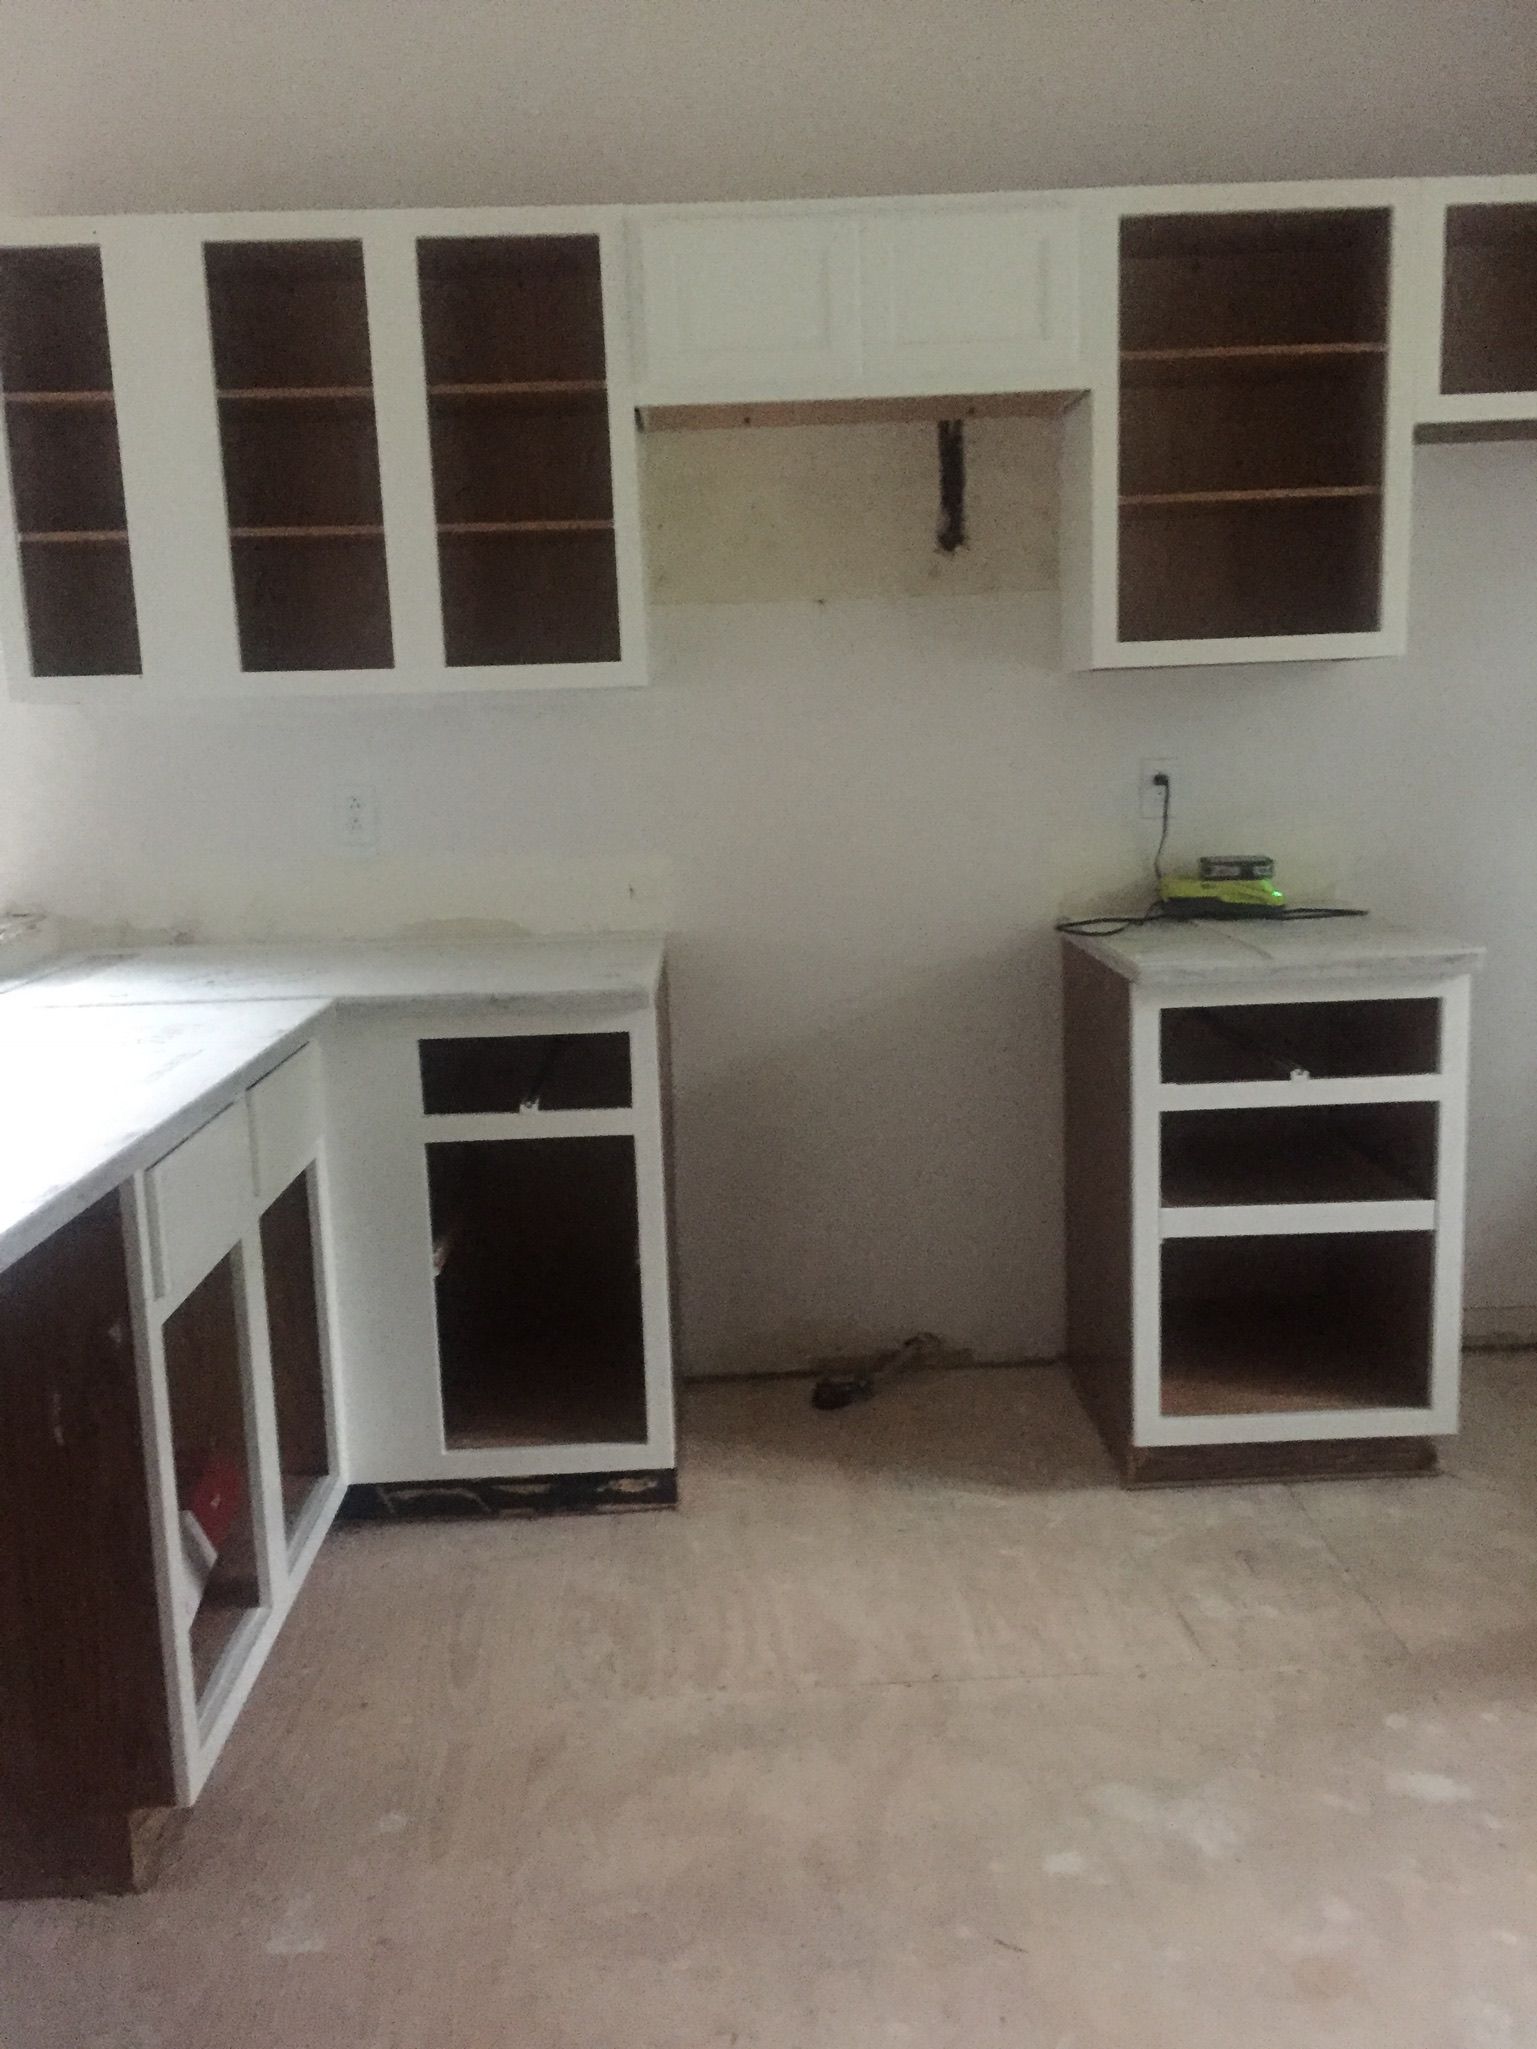 Painted Cabinets: Behr pure white cabinet paint